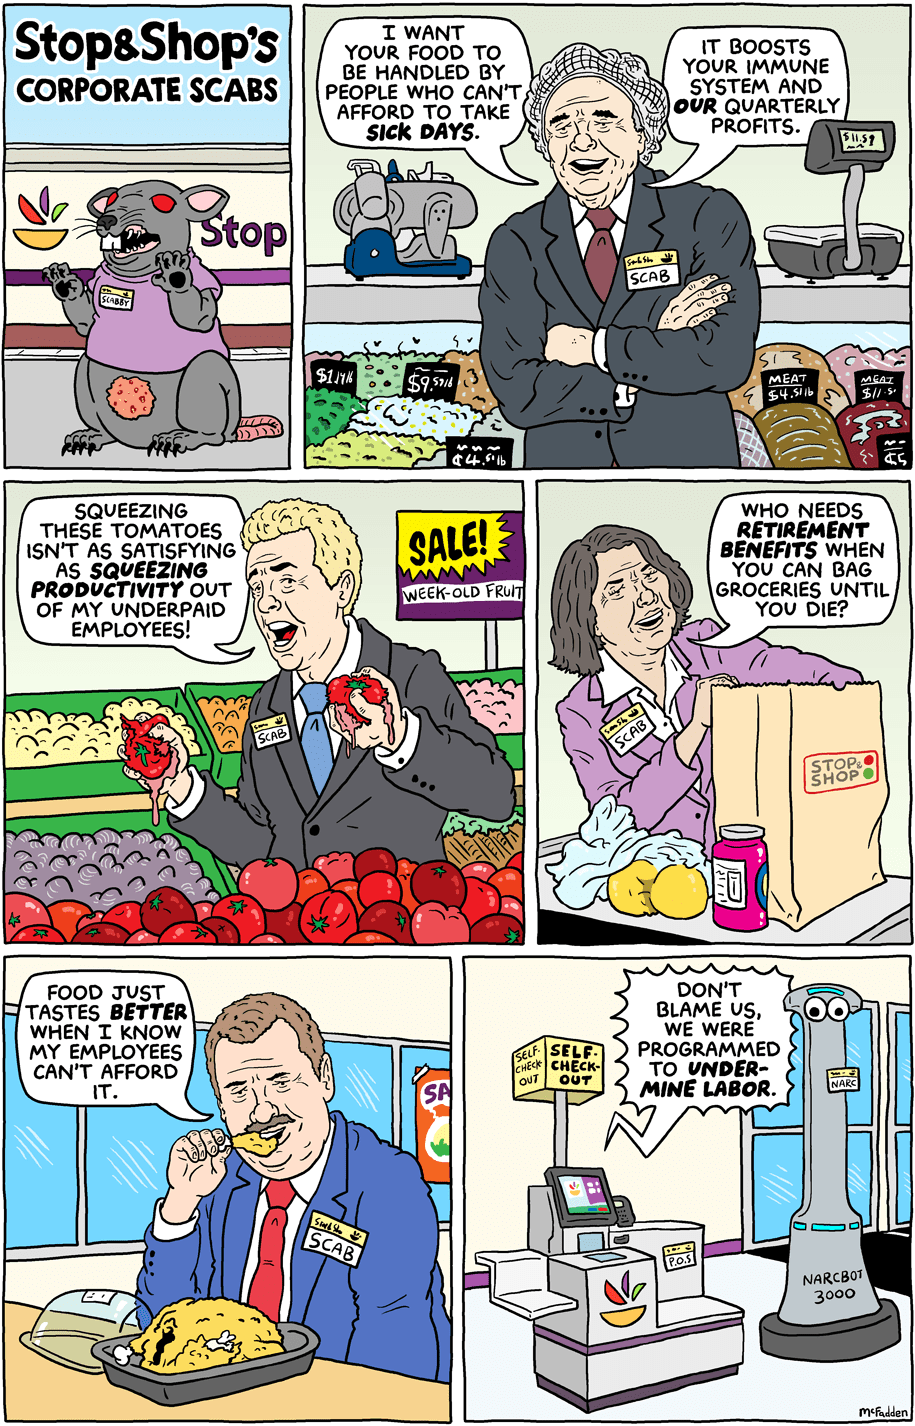 Cartoon: Stop & Shop's corporate scabs